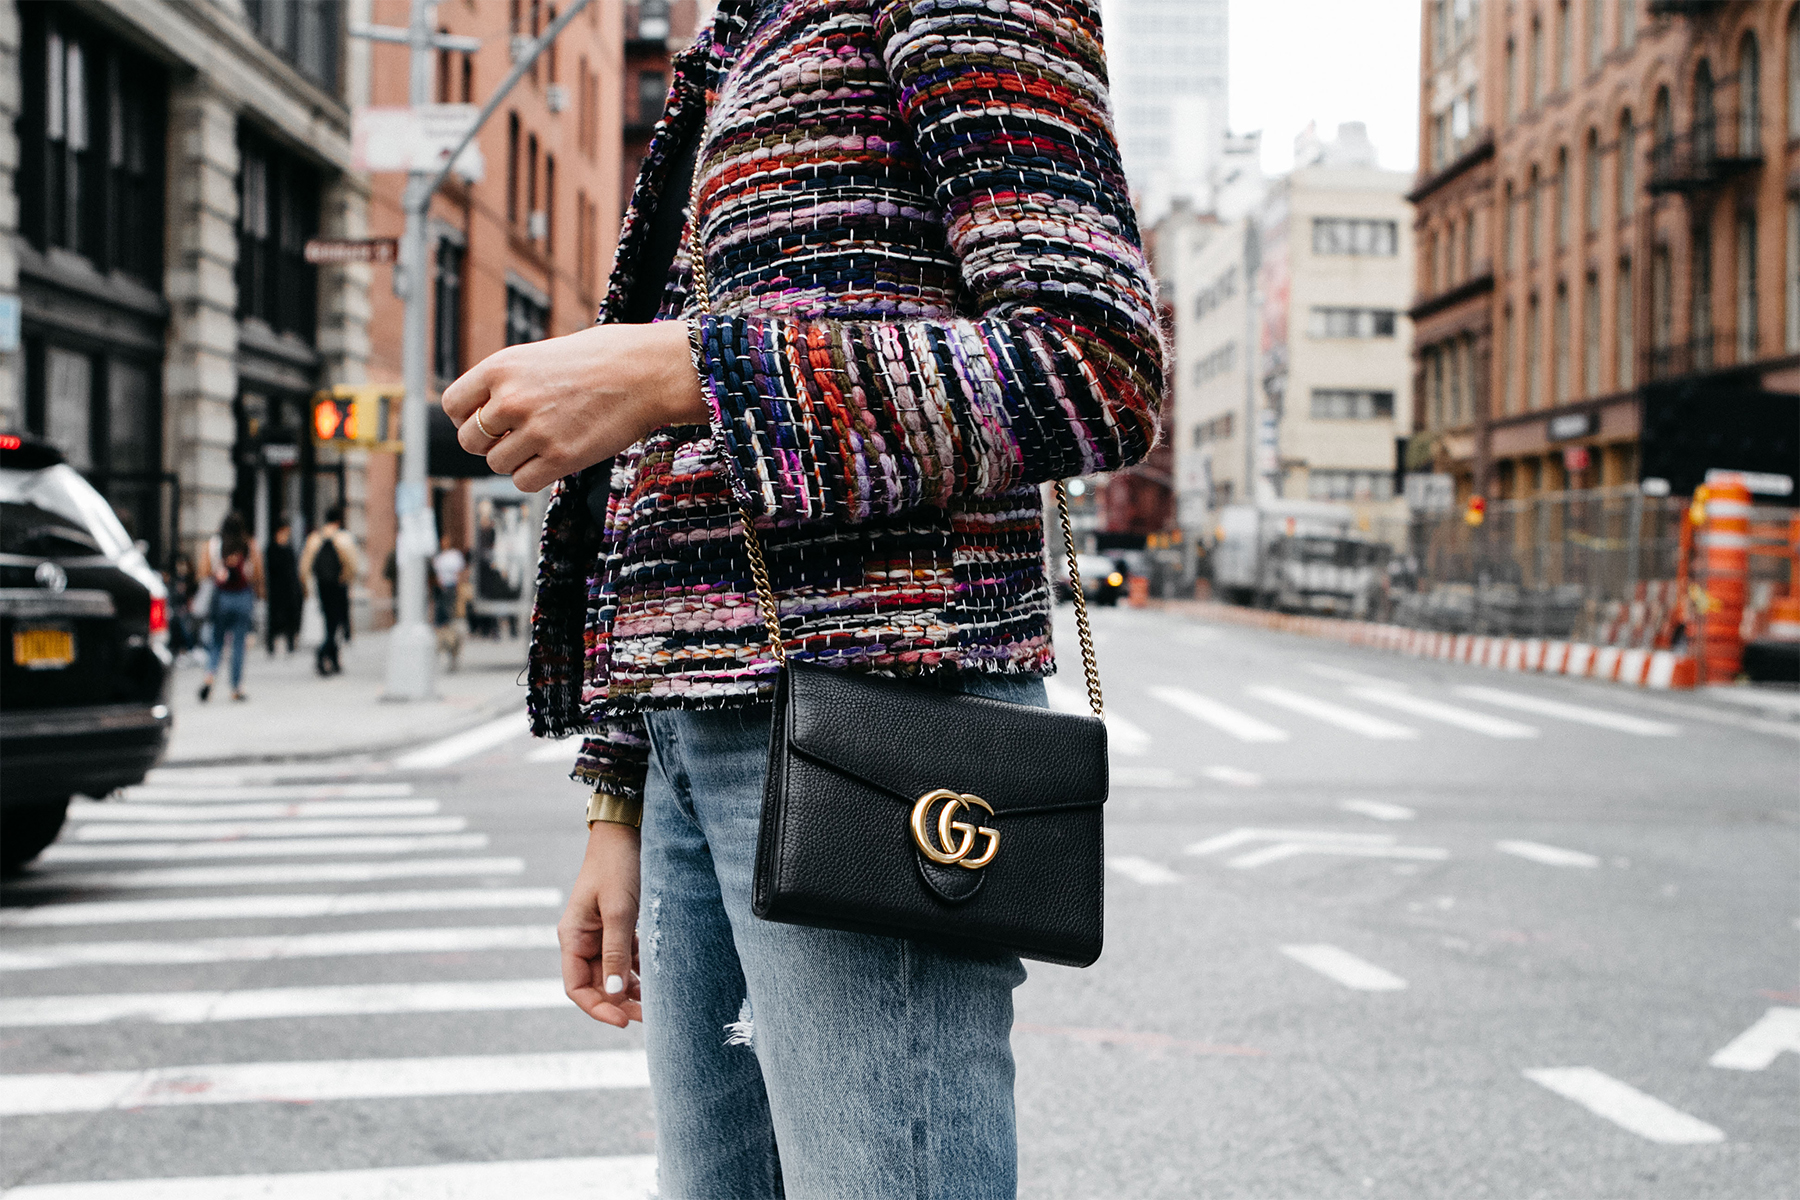 IRO Multicolored Tweed Jacket Gucci Marmont Handbag Fashion Jackson Dallas Blogger Fashion Blogger Street Style NYFW